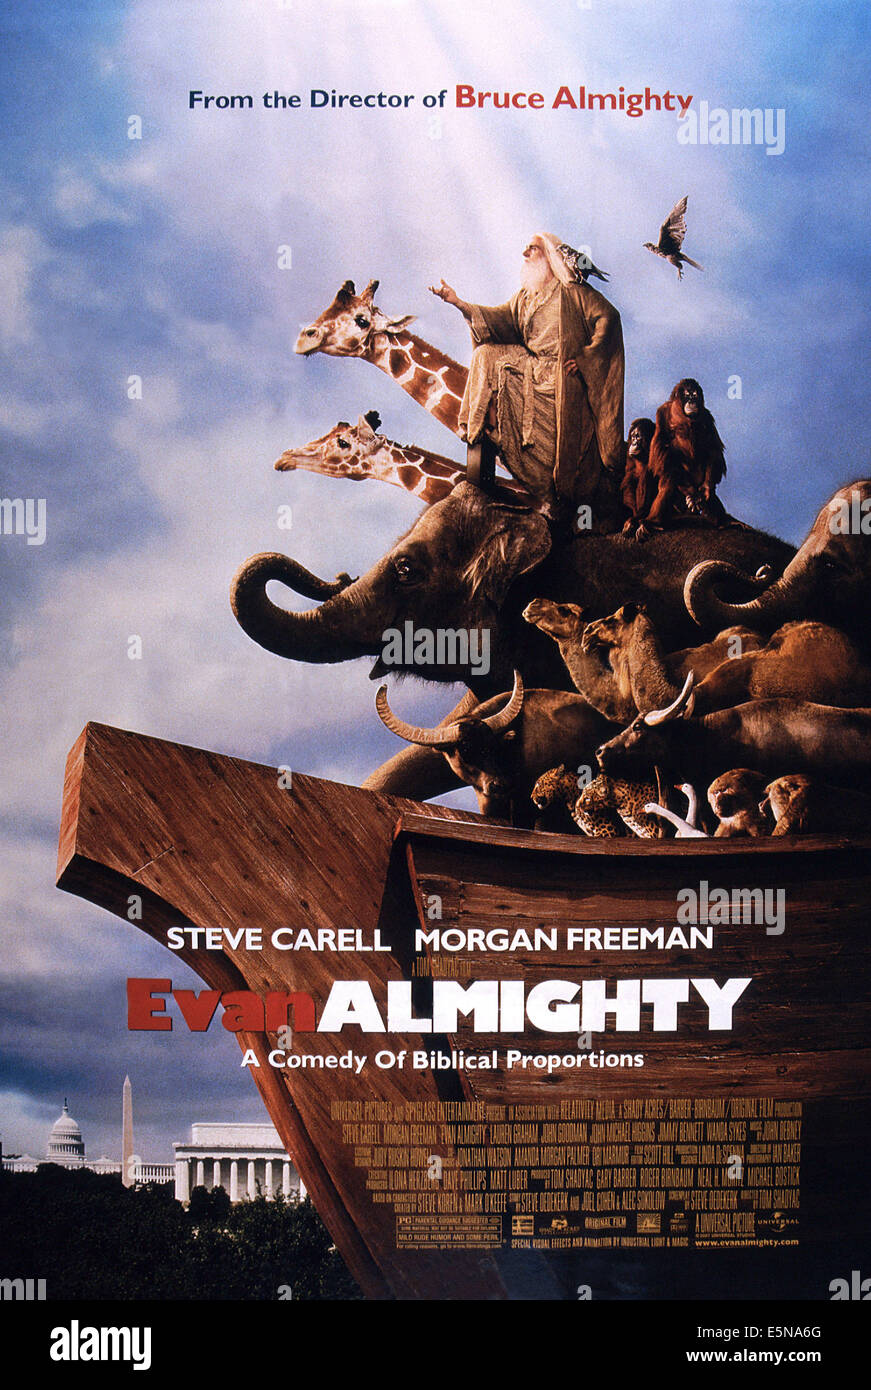 EVAN ALMIGHTY, Steve Carell (center), 2007. ©Universal/courtesy Everett Collection - Stock Image